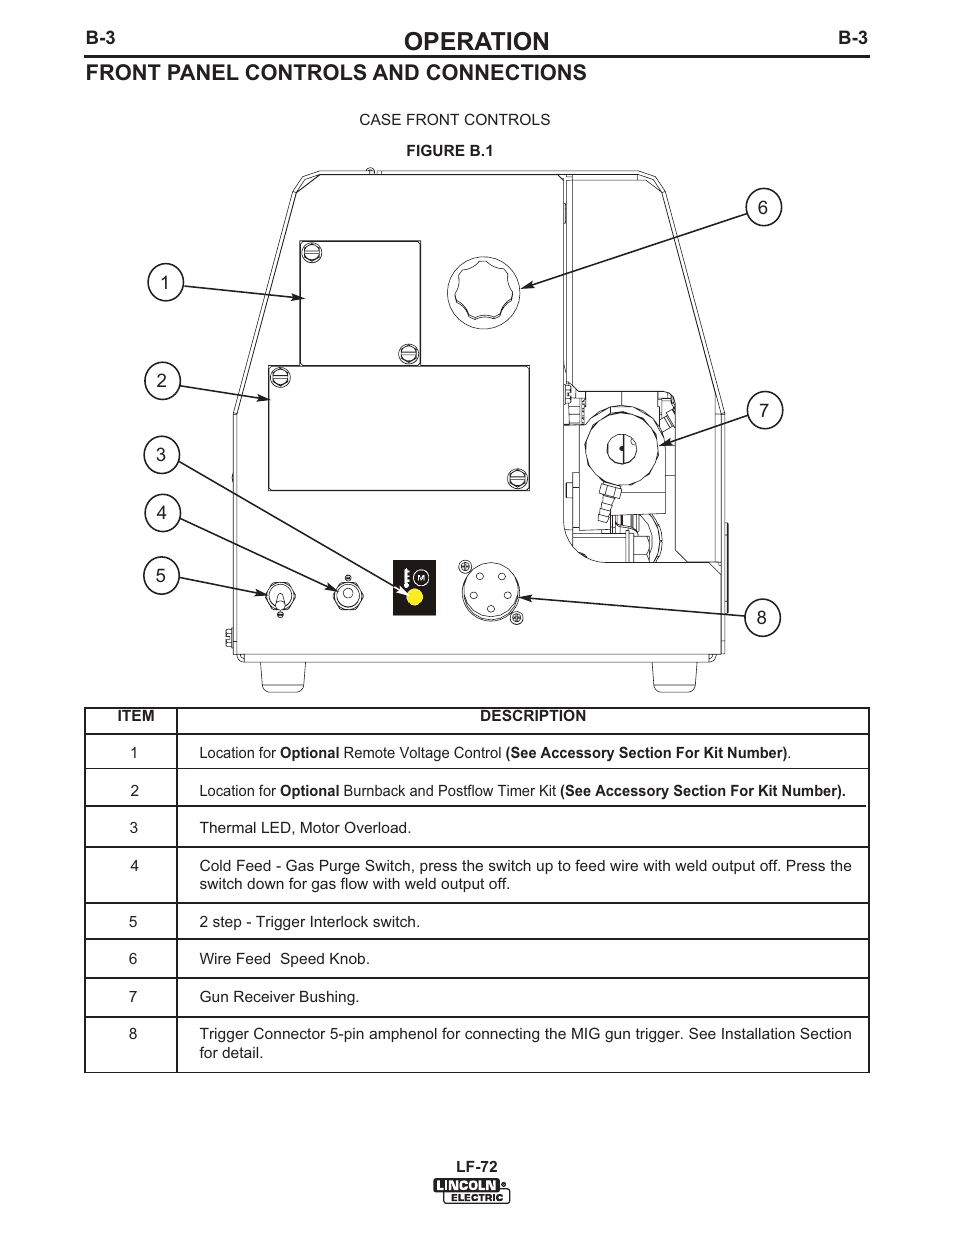 hight resolution of operation front panel controls and connections lincoln electric im847 lf 72 wire feeder